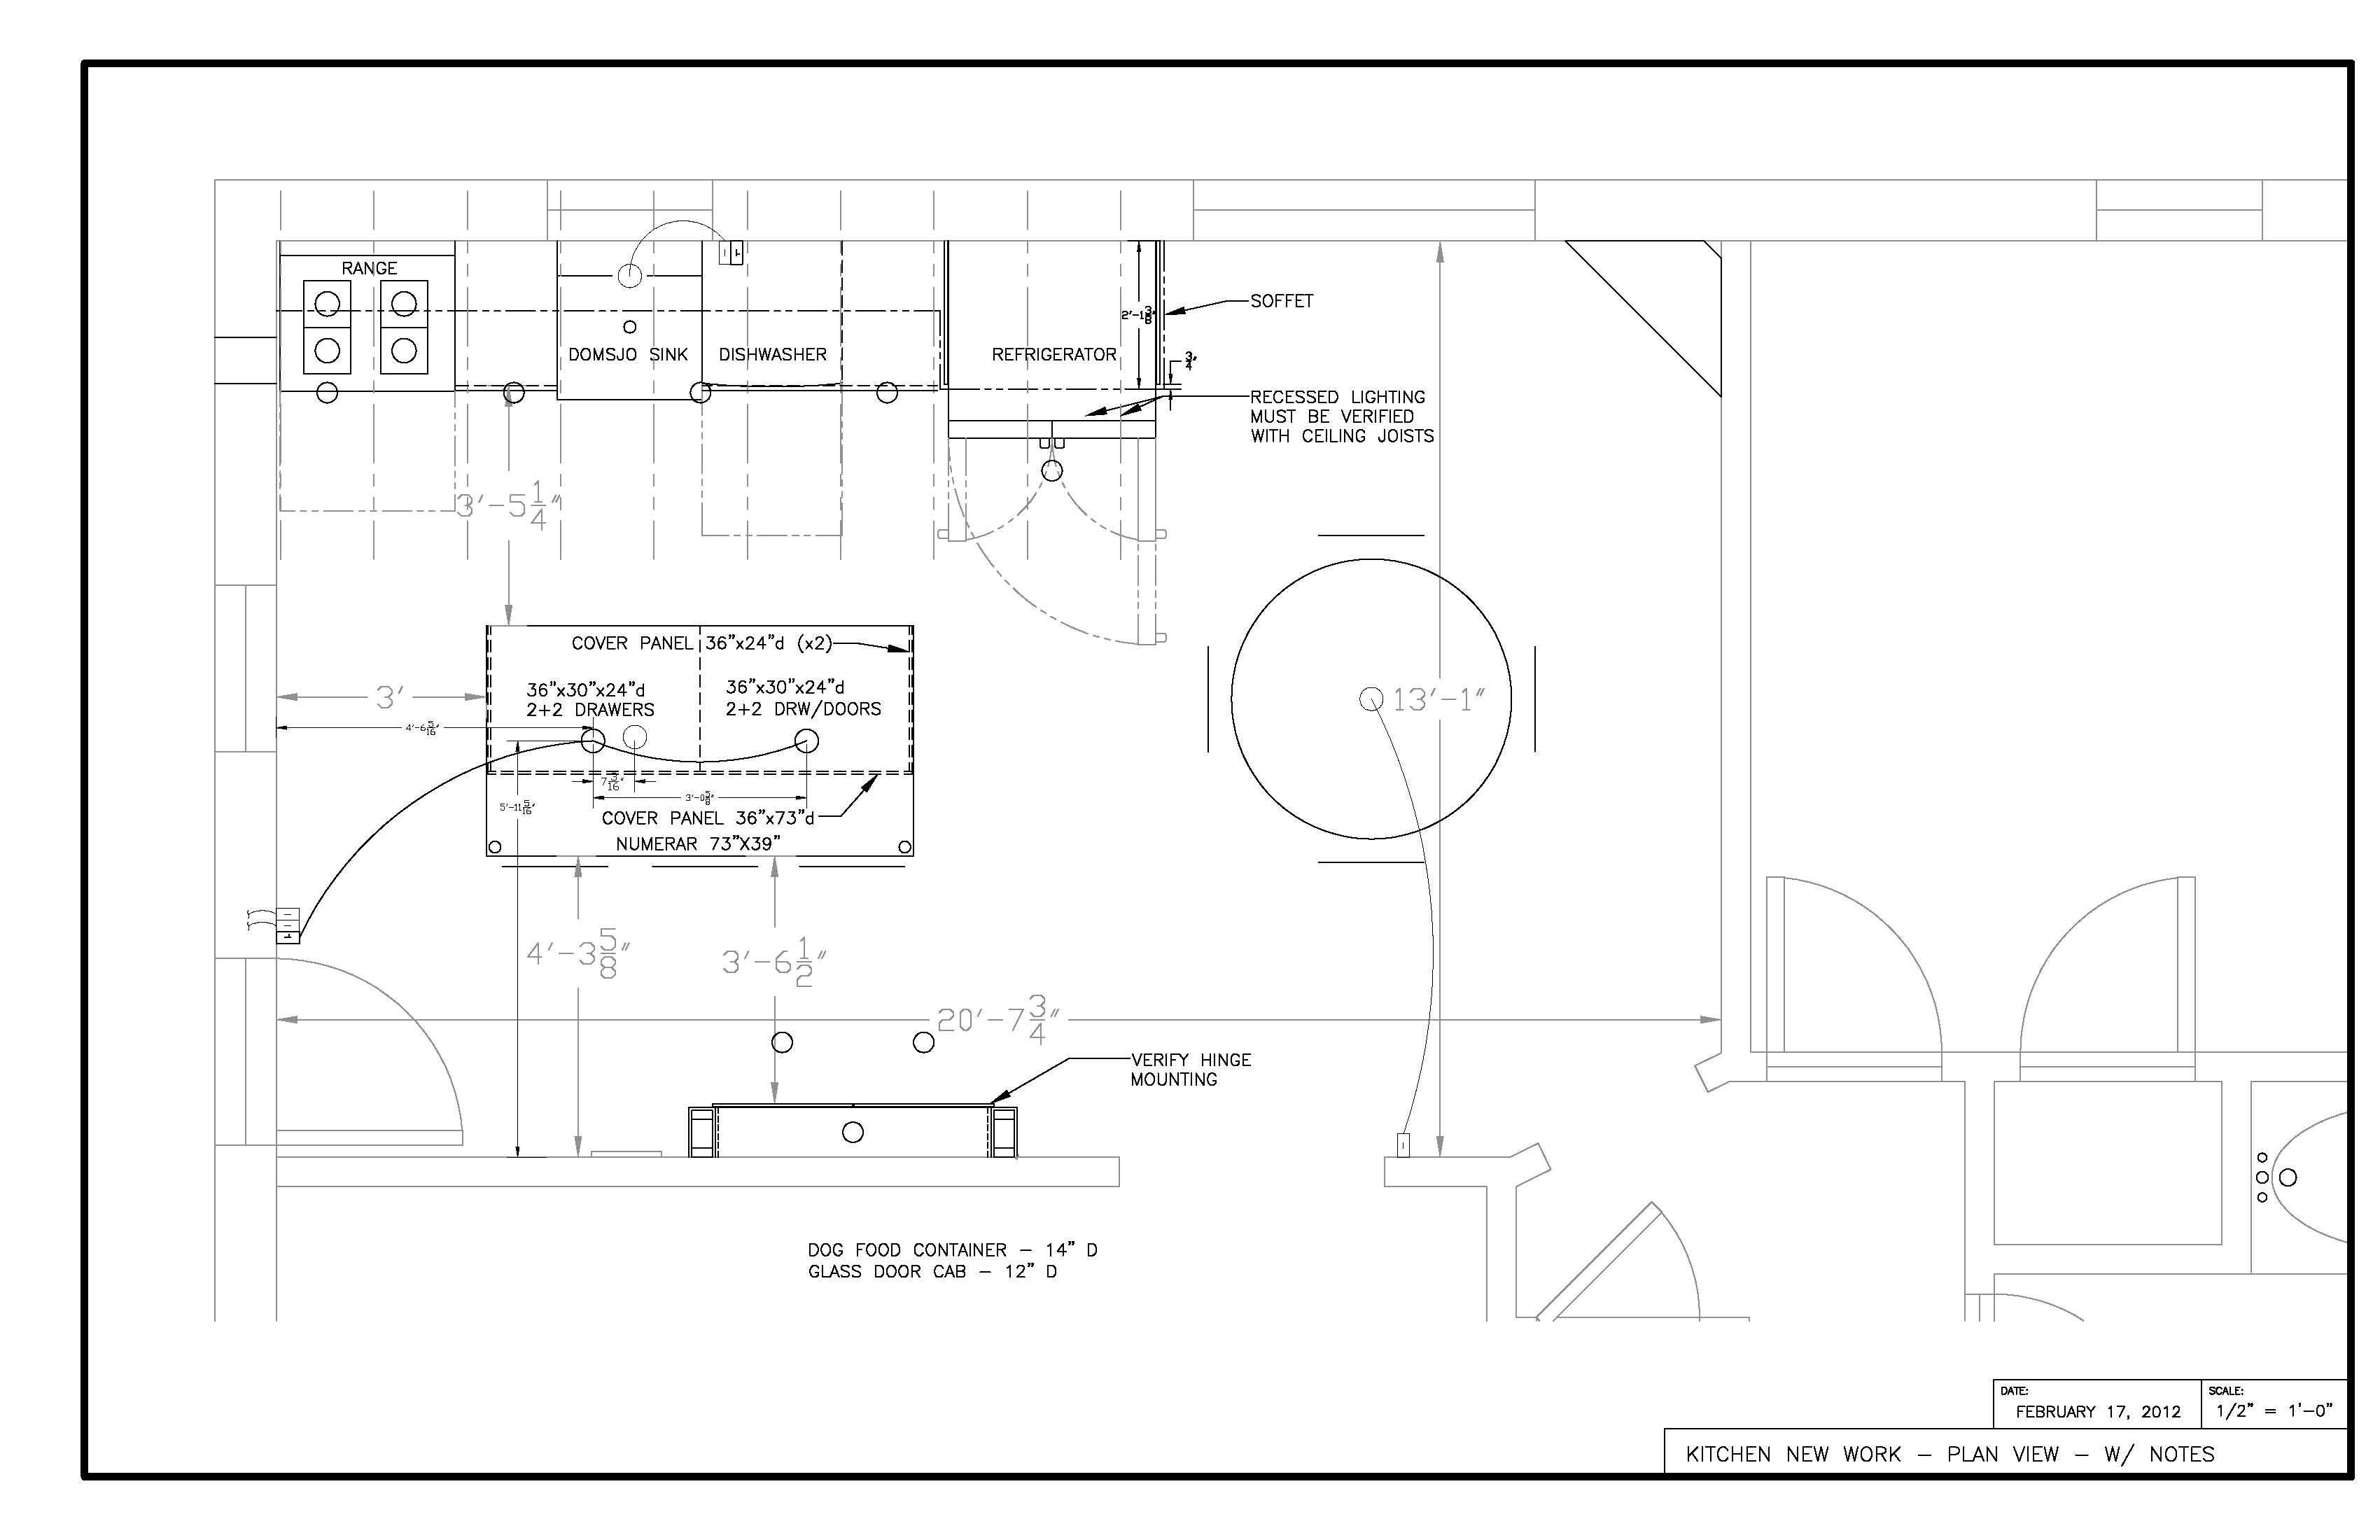 small resolution of kitchen plan view current working drawing w electrical